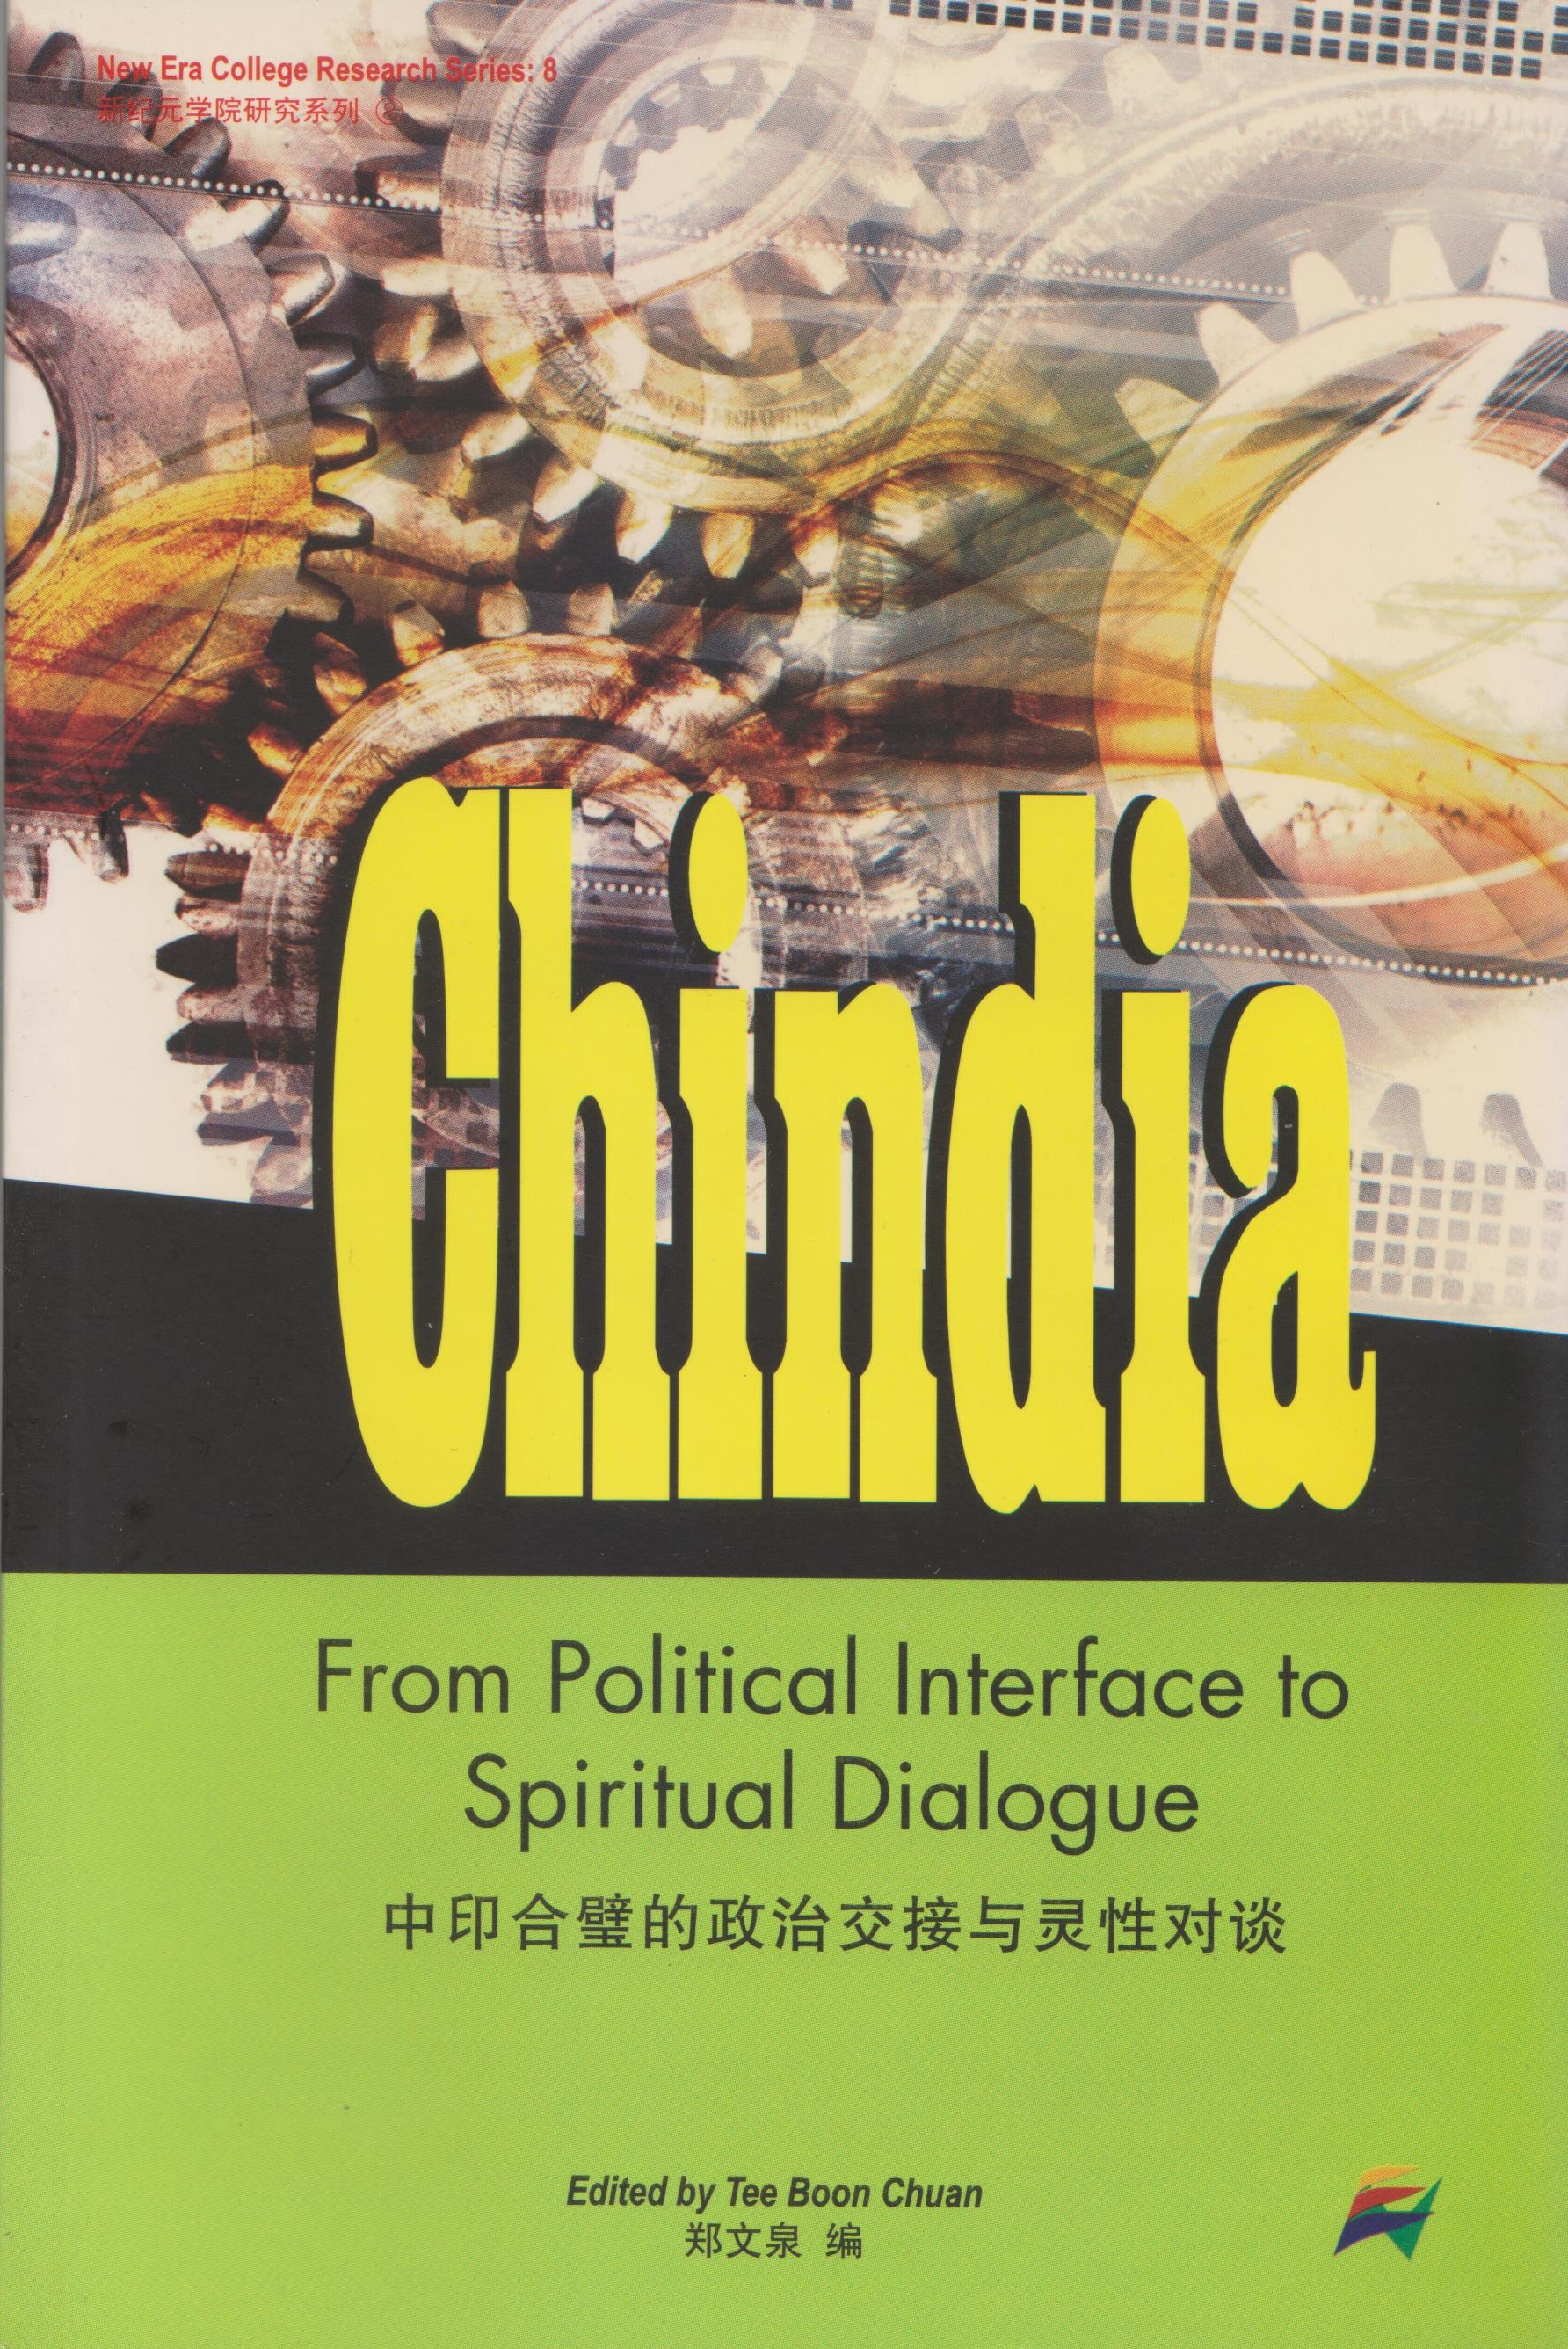 Chindia: From Political Interface to Spiritual Dialogue